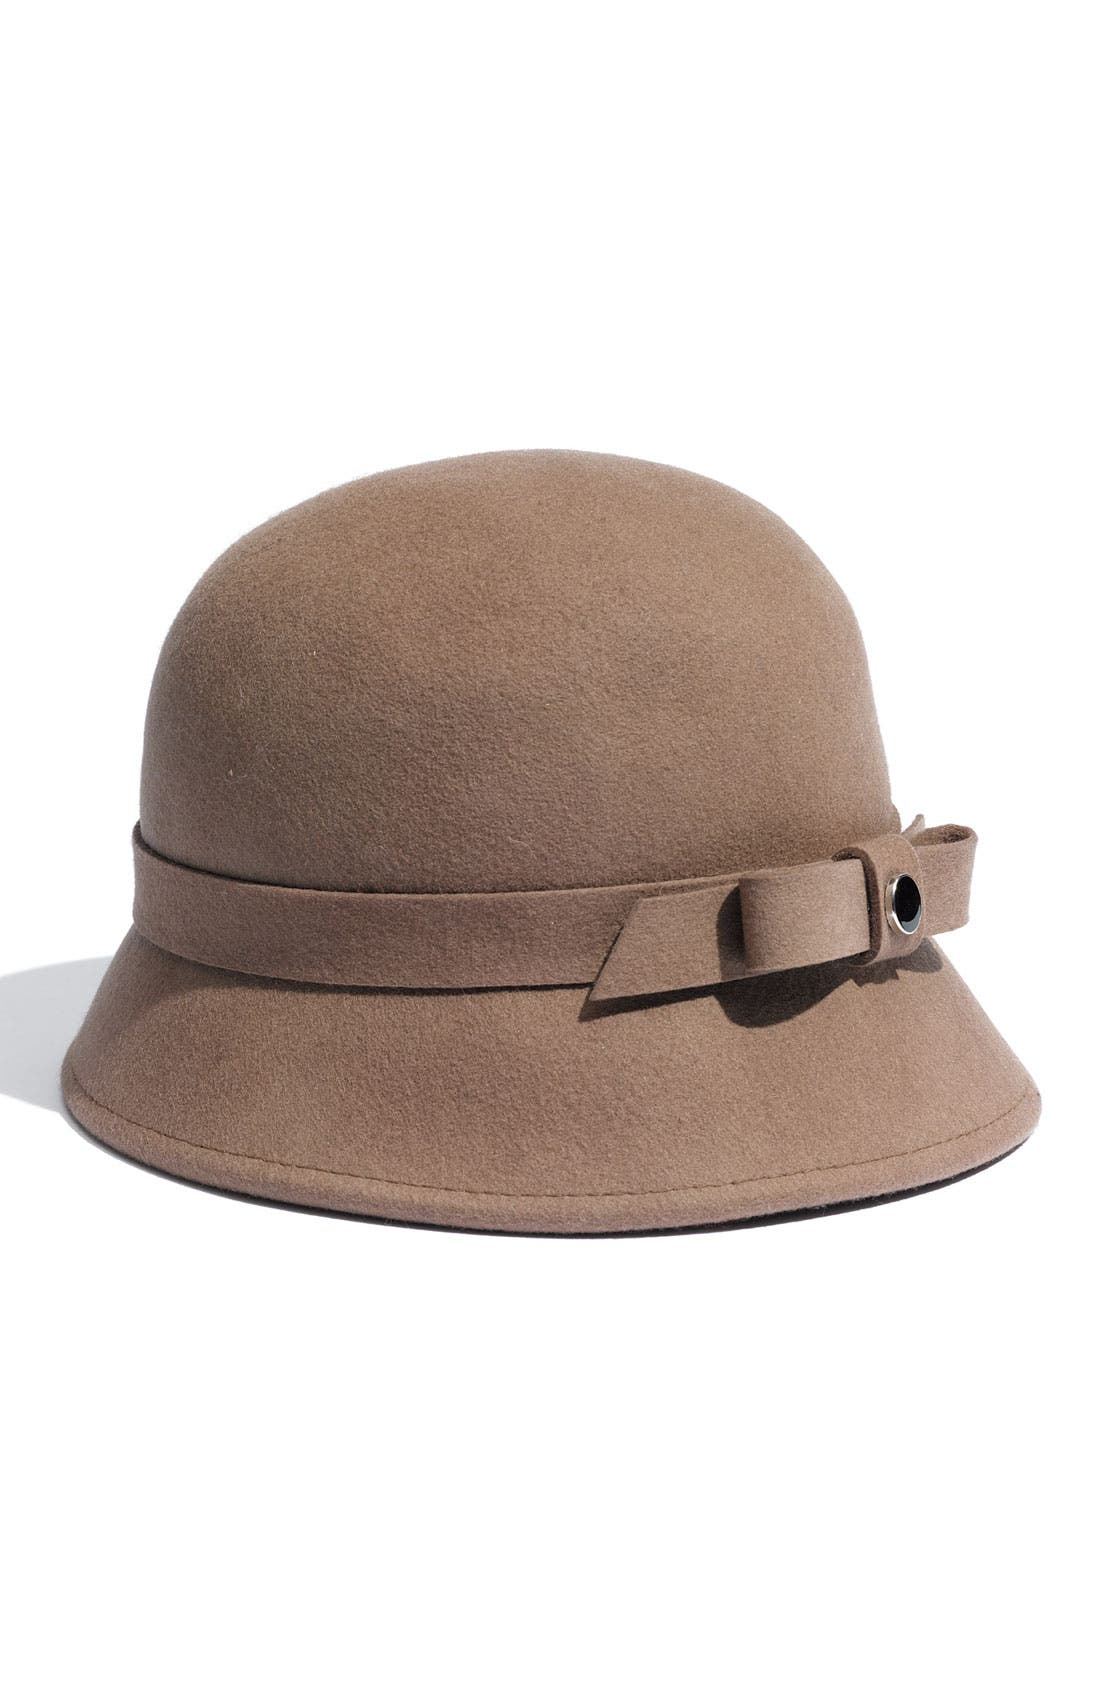 Alternate Image 1 Selected - Nordstrom Bow Trimmed Cloche